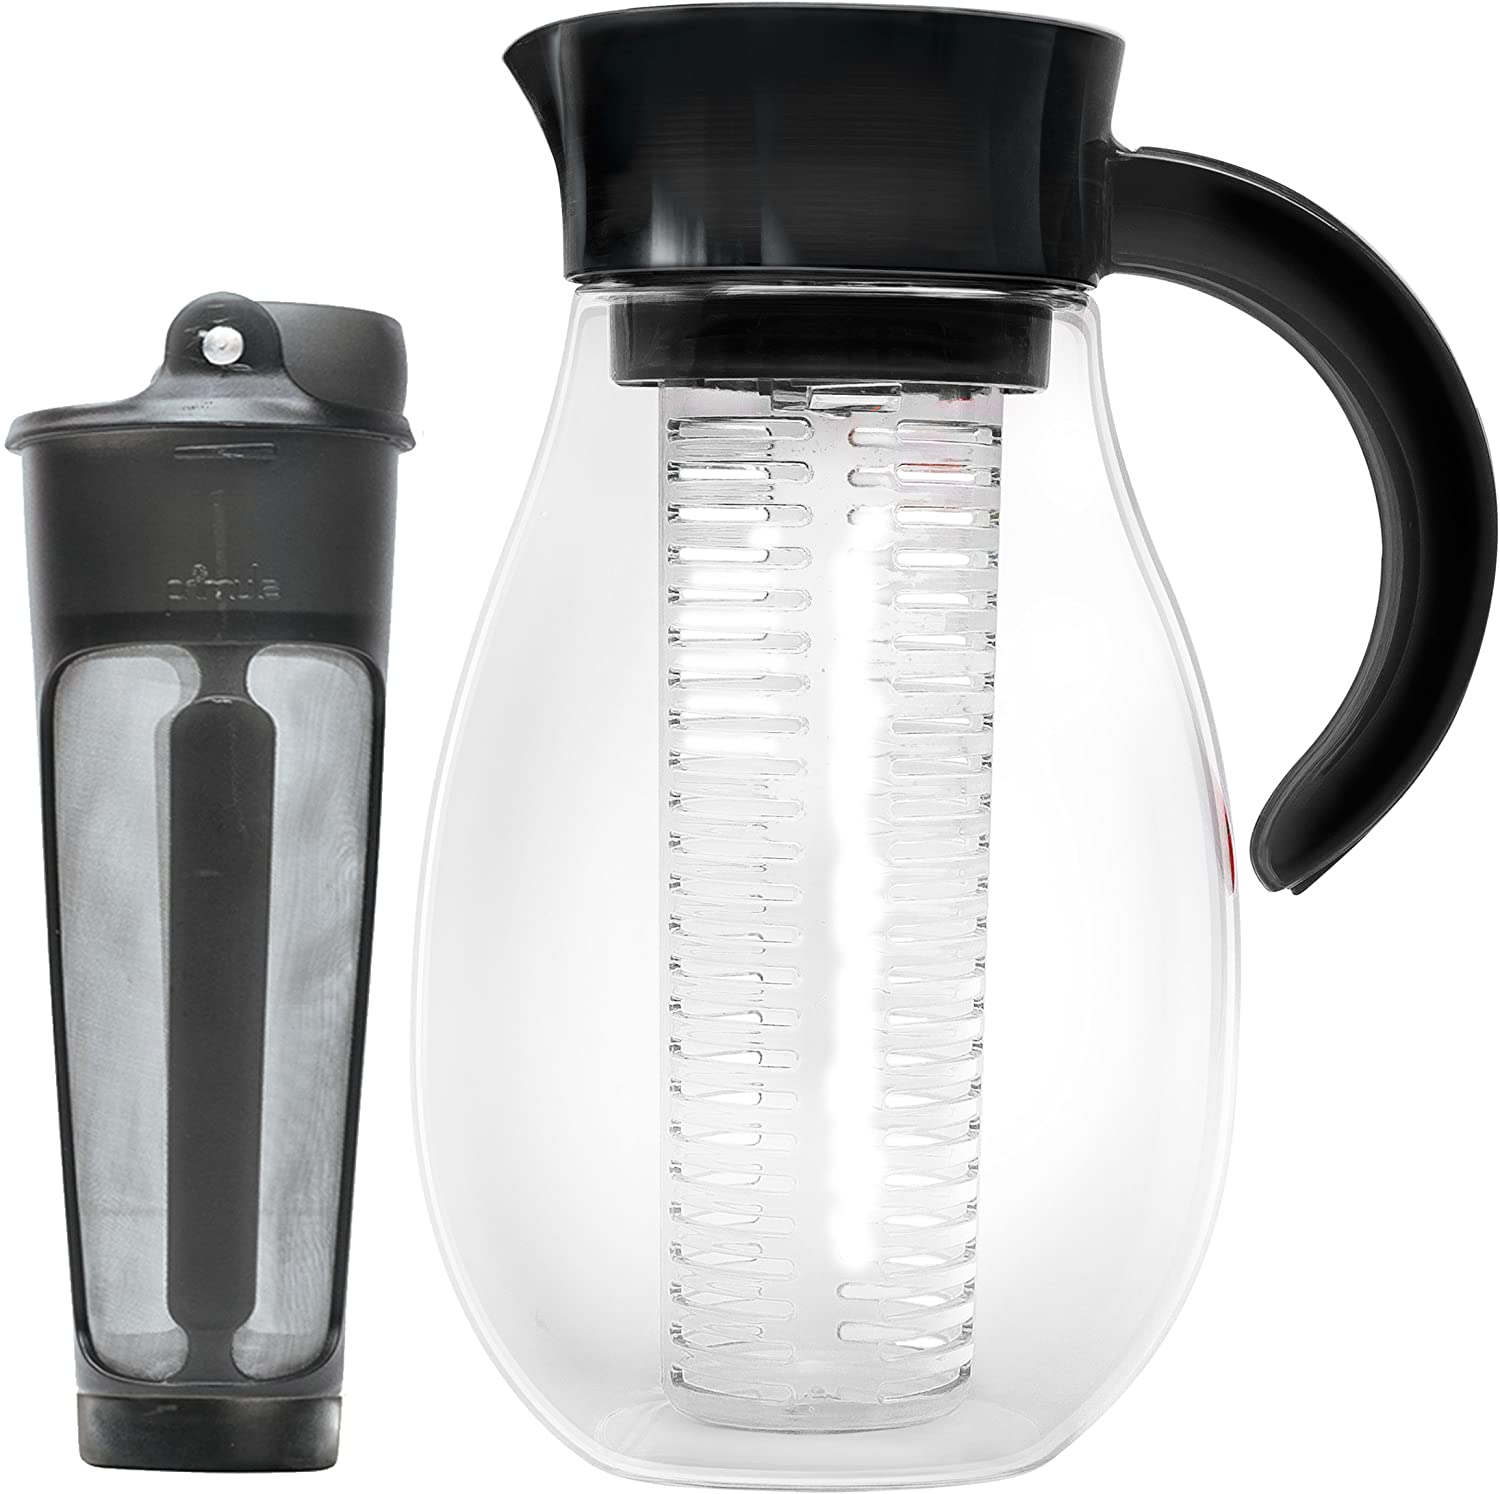 Primula PFUBK-3927 Flavor Up Airtight Cold Brew Iced Coffee Maker with Fruit core for Infused Water, Tea and More, Shatterproof Durable Plastic Construction, Leak-Proof, 2.7-quart, Black B07D8J9X1K